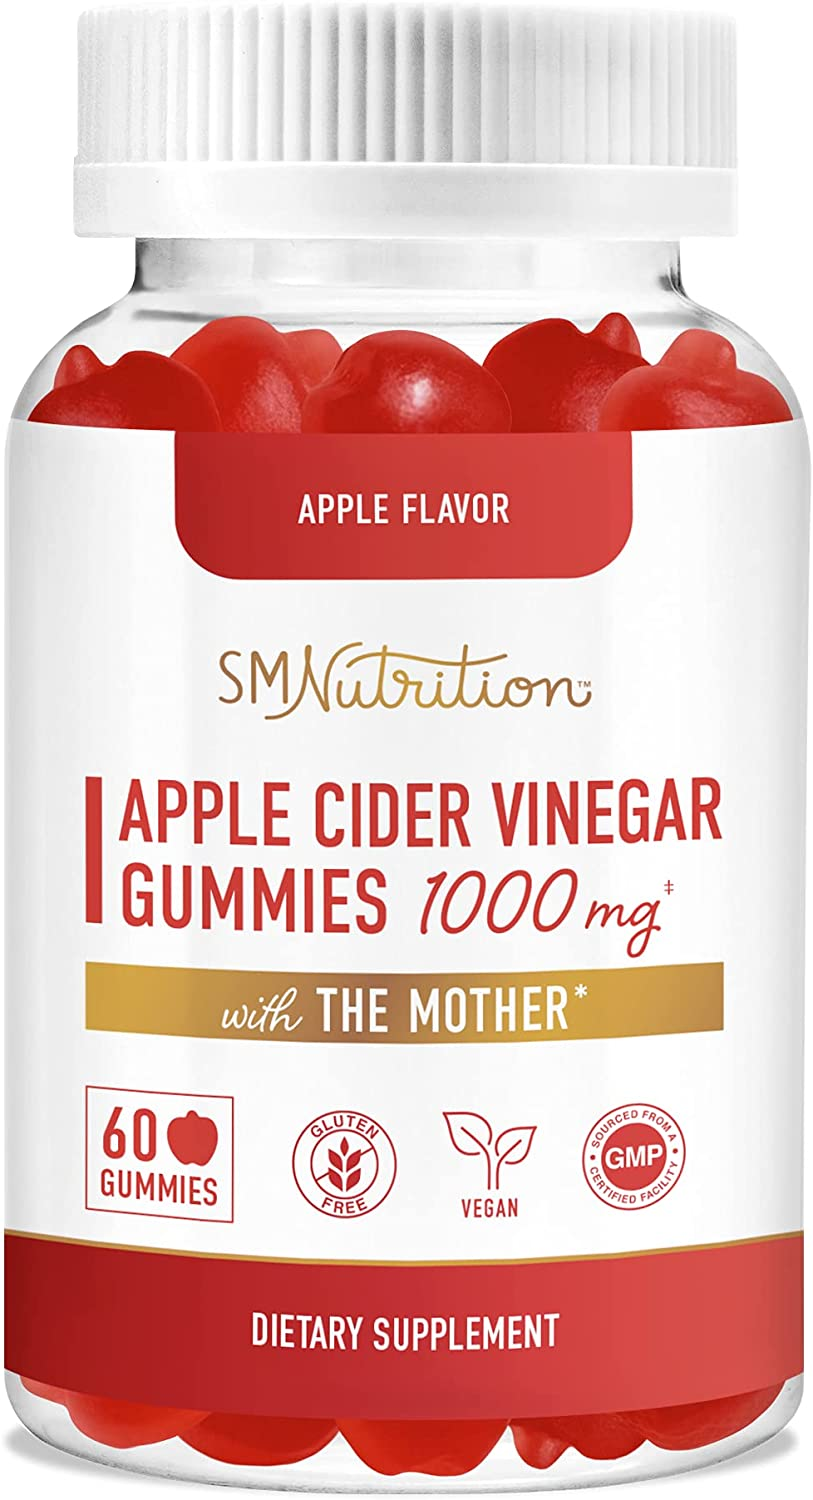 Apple 4 years warranty Cider All items in the store Vinegar Gummies with The Weight Mother for Loss En